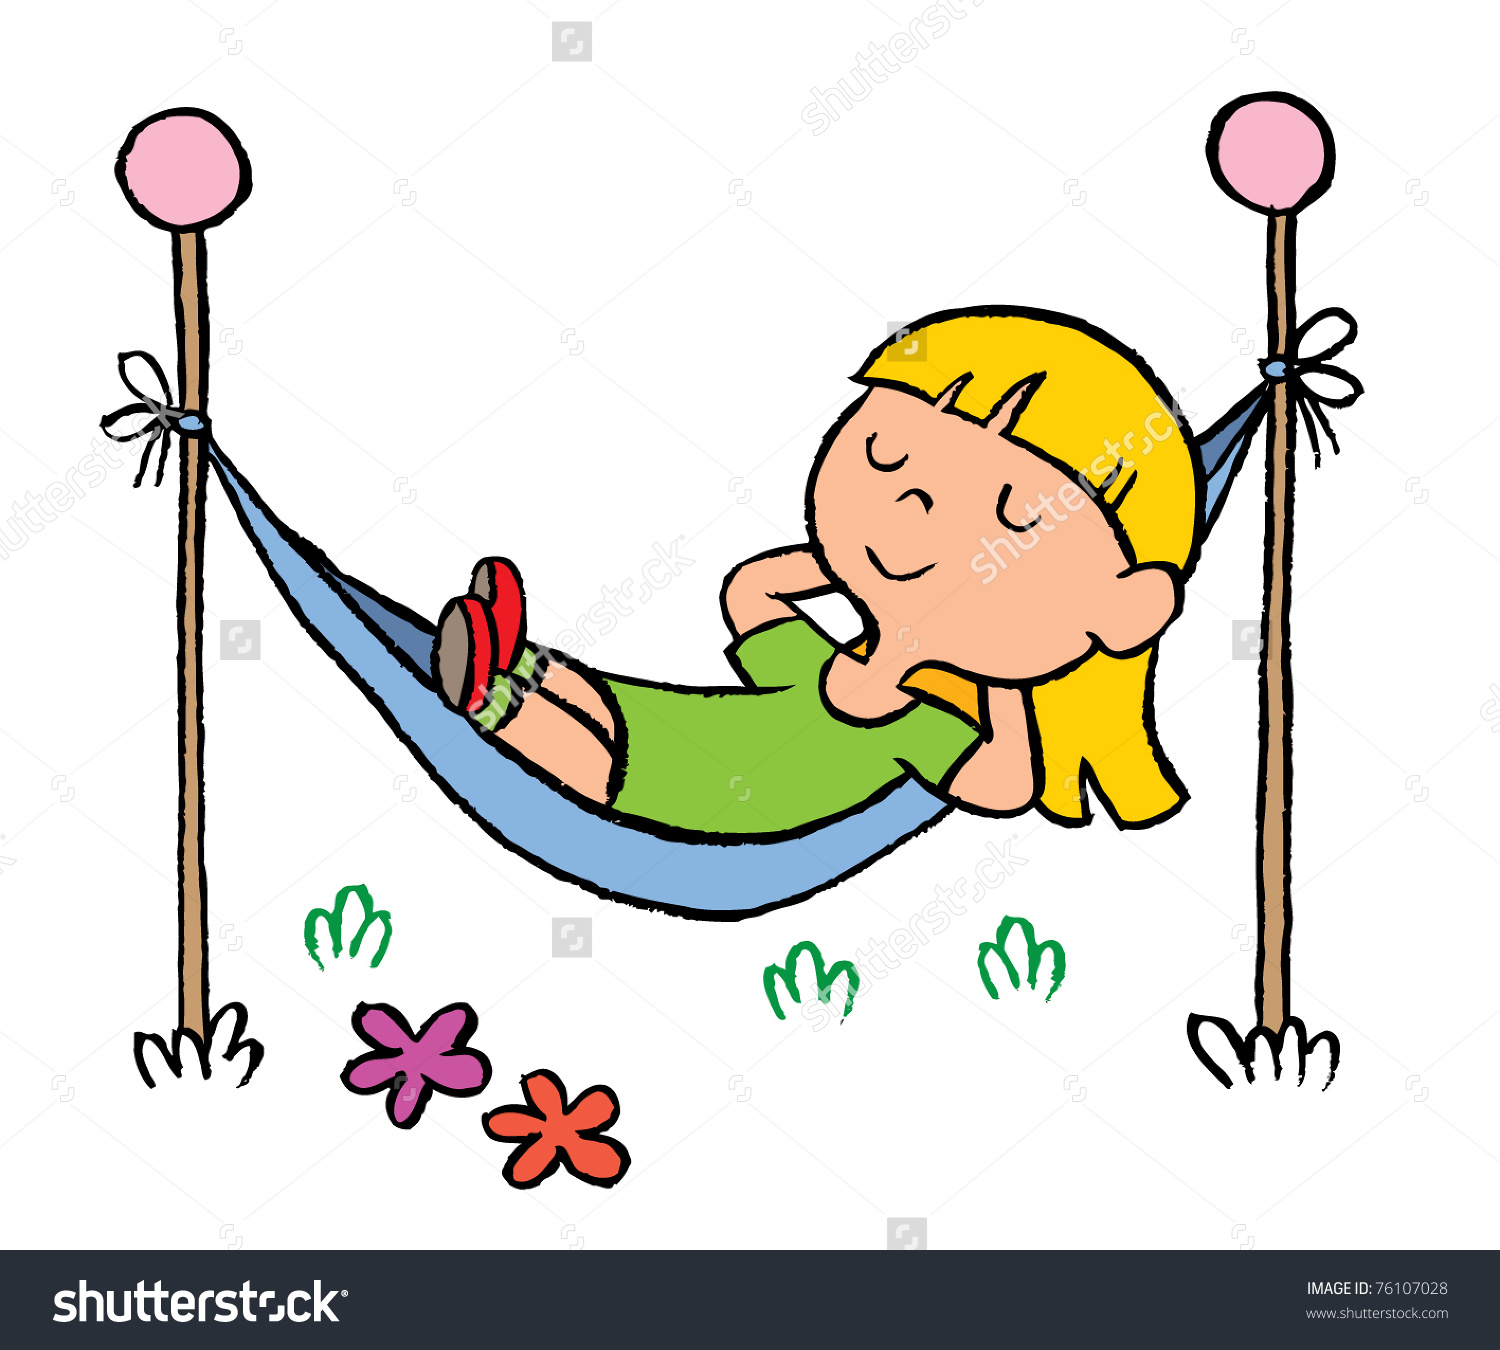 Animations : relaxing-on-hammock-animation : Classroom Clipart |Kids Relax Clipart